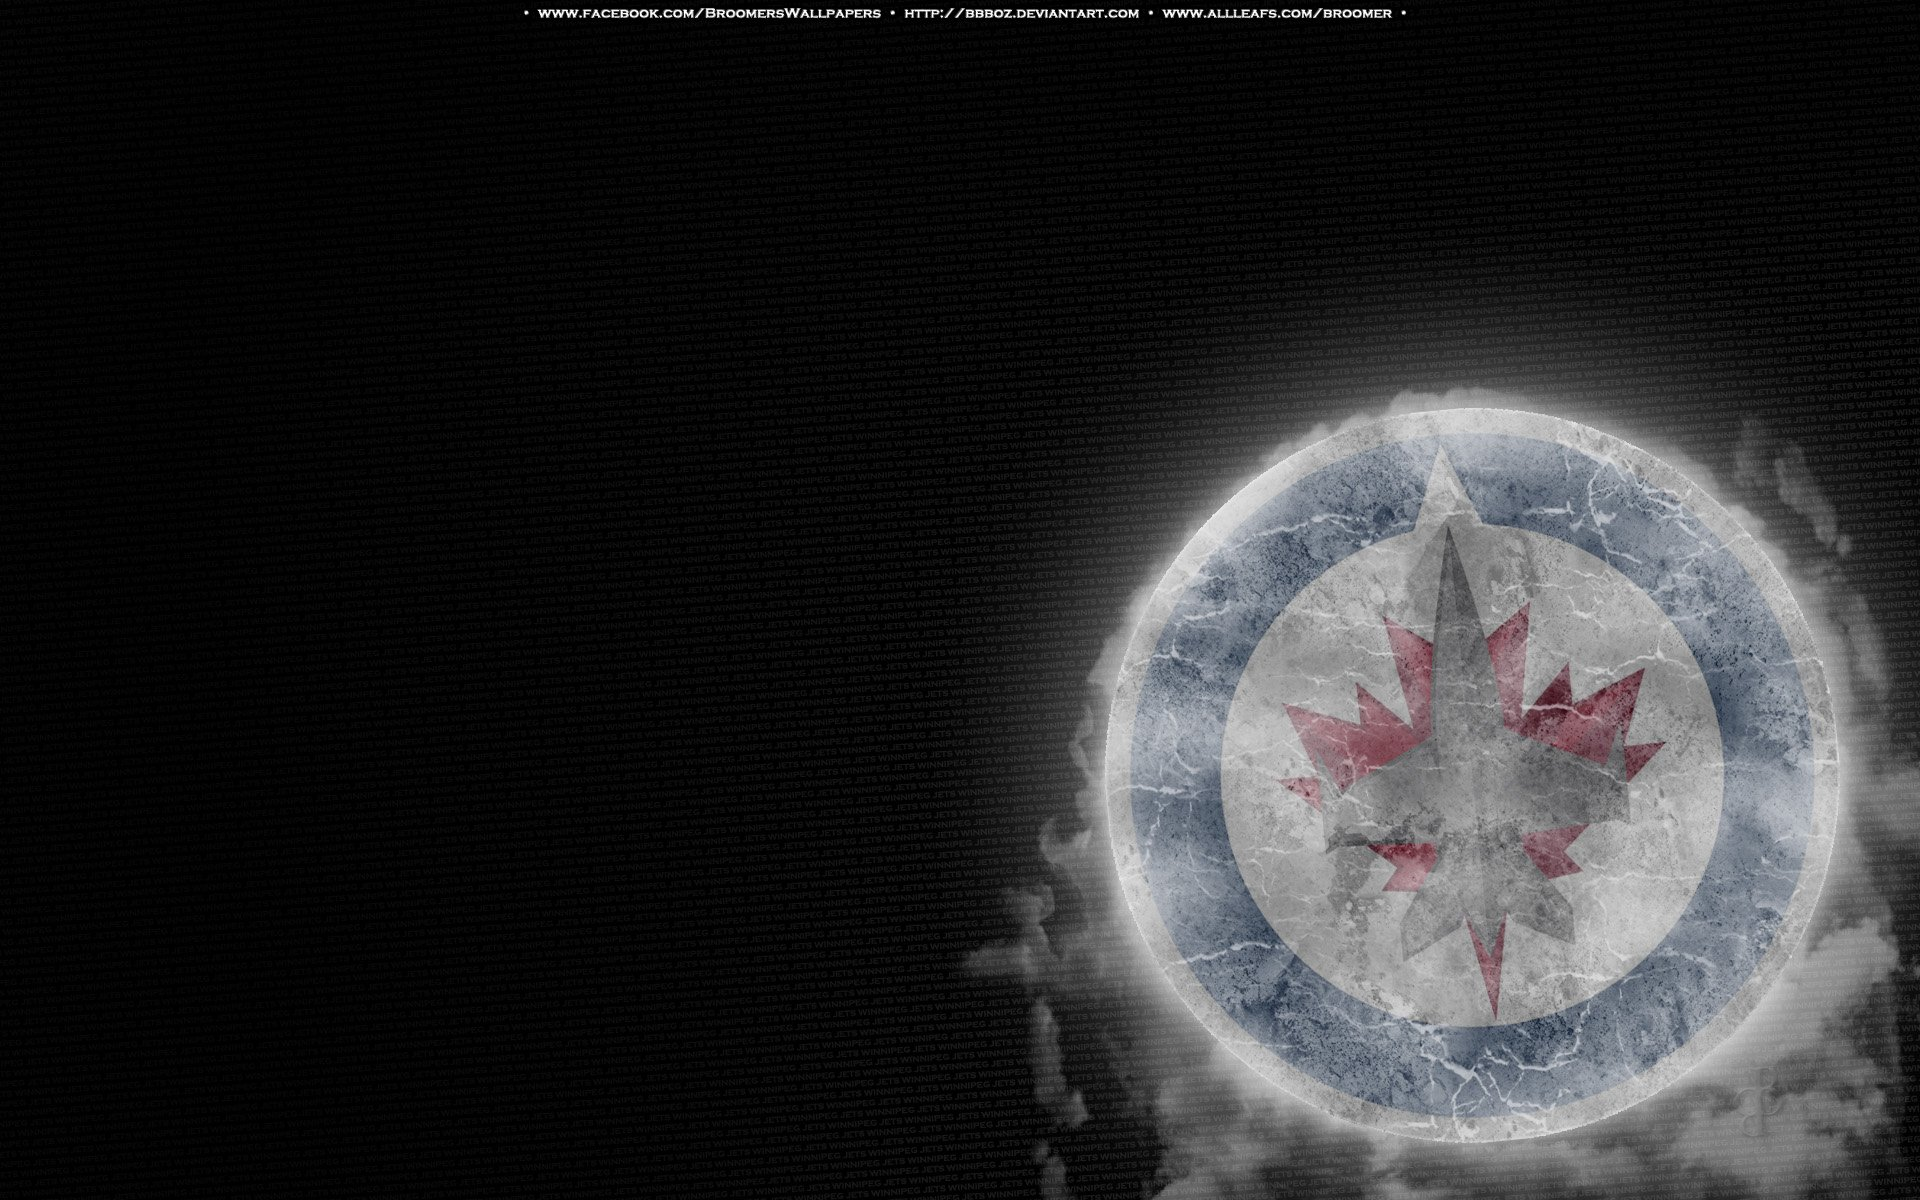 winnipeg jets 11 ice by bbboz fan art wallpaper other 2011 2015 bbboz 1920x1200